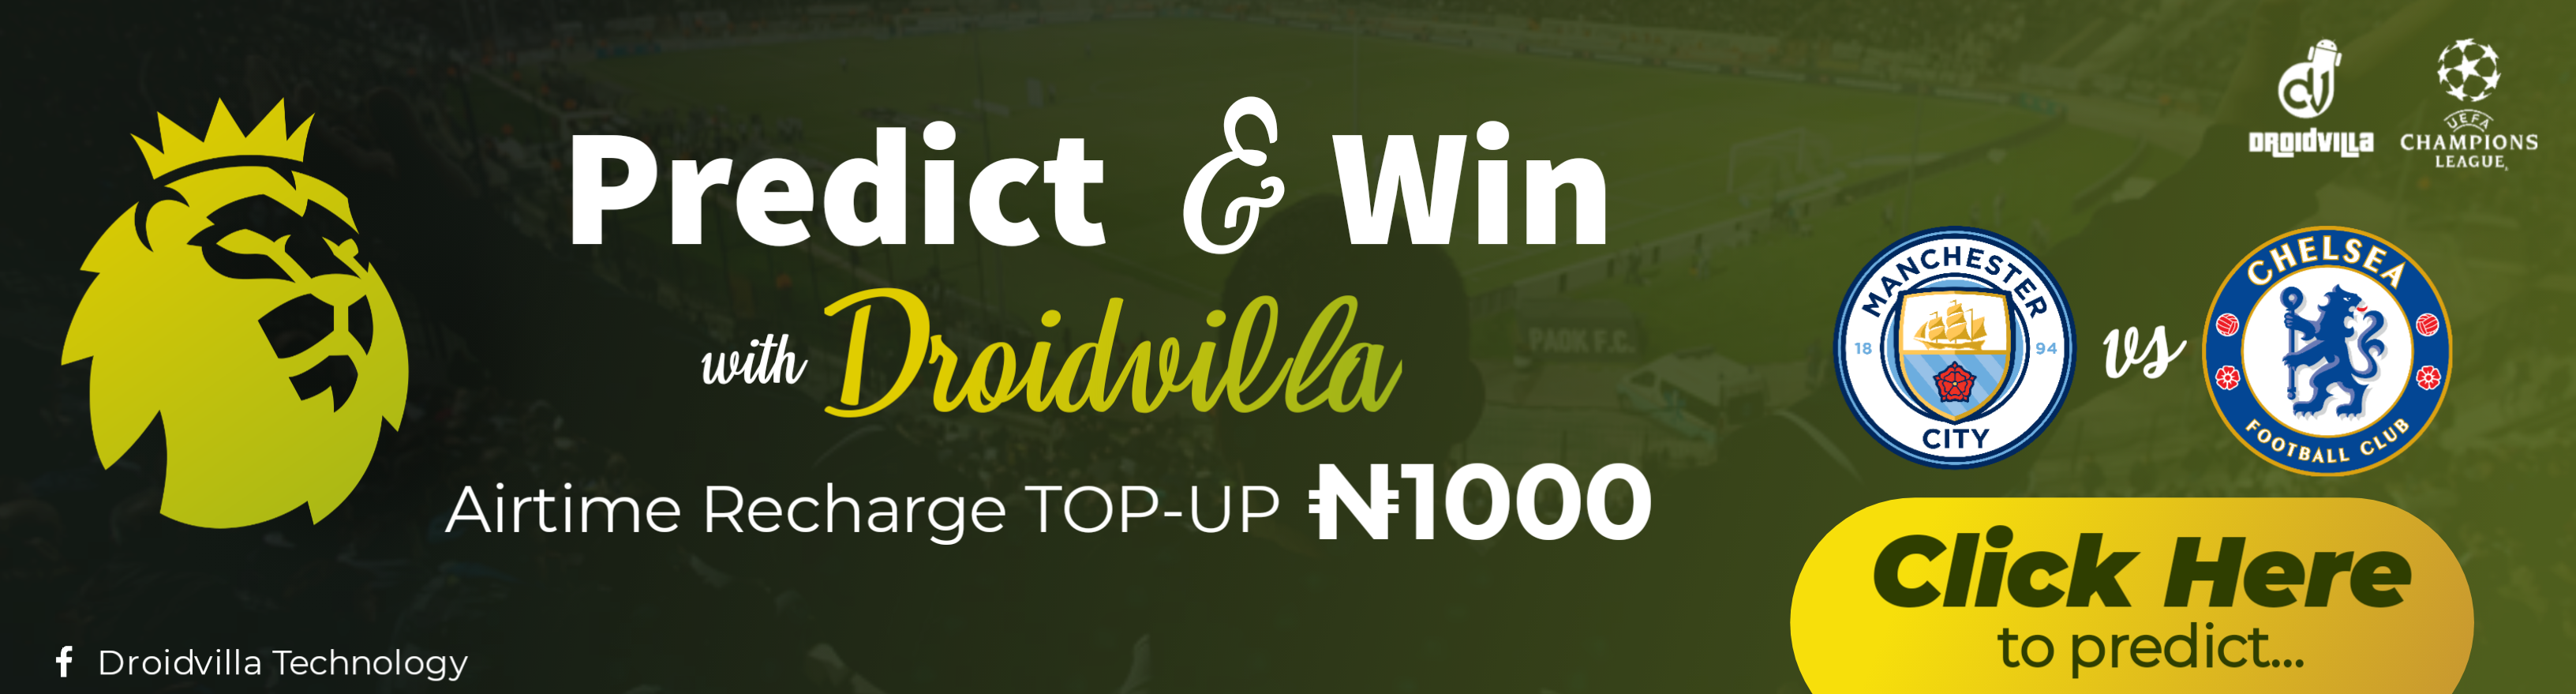 Predict Chelsea vs Man City championship final correct score and win N1000 airtime recharge